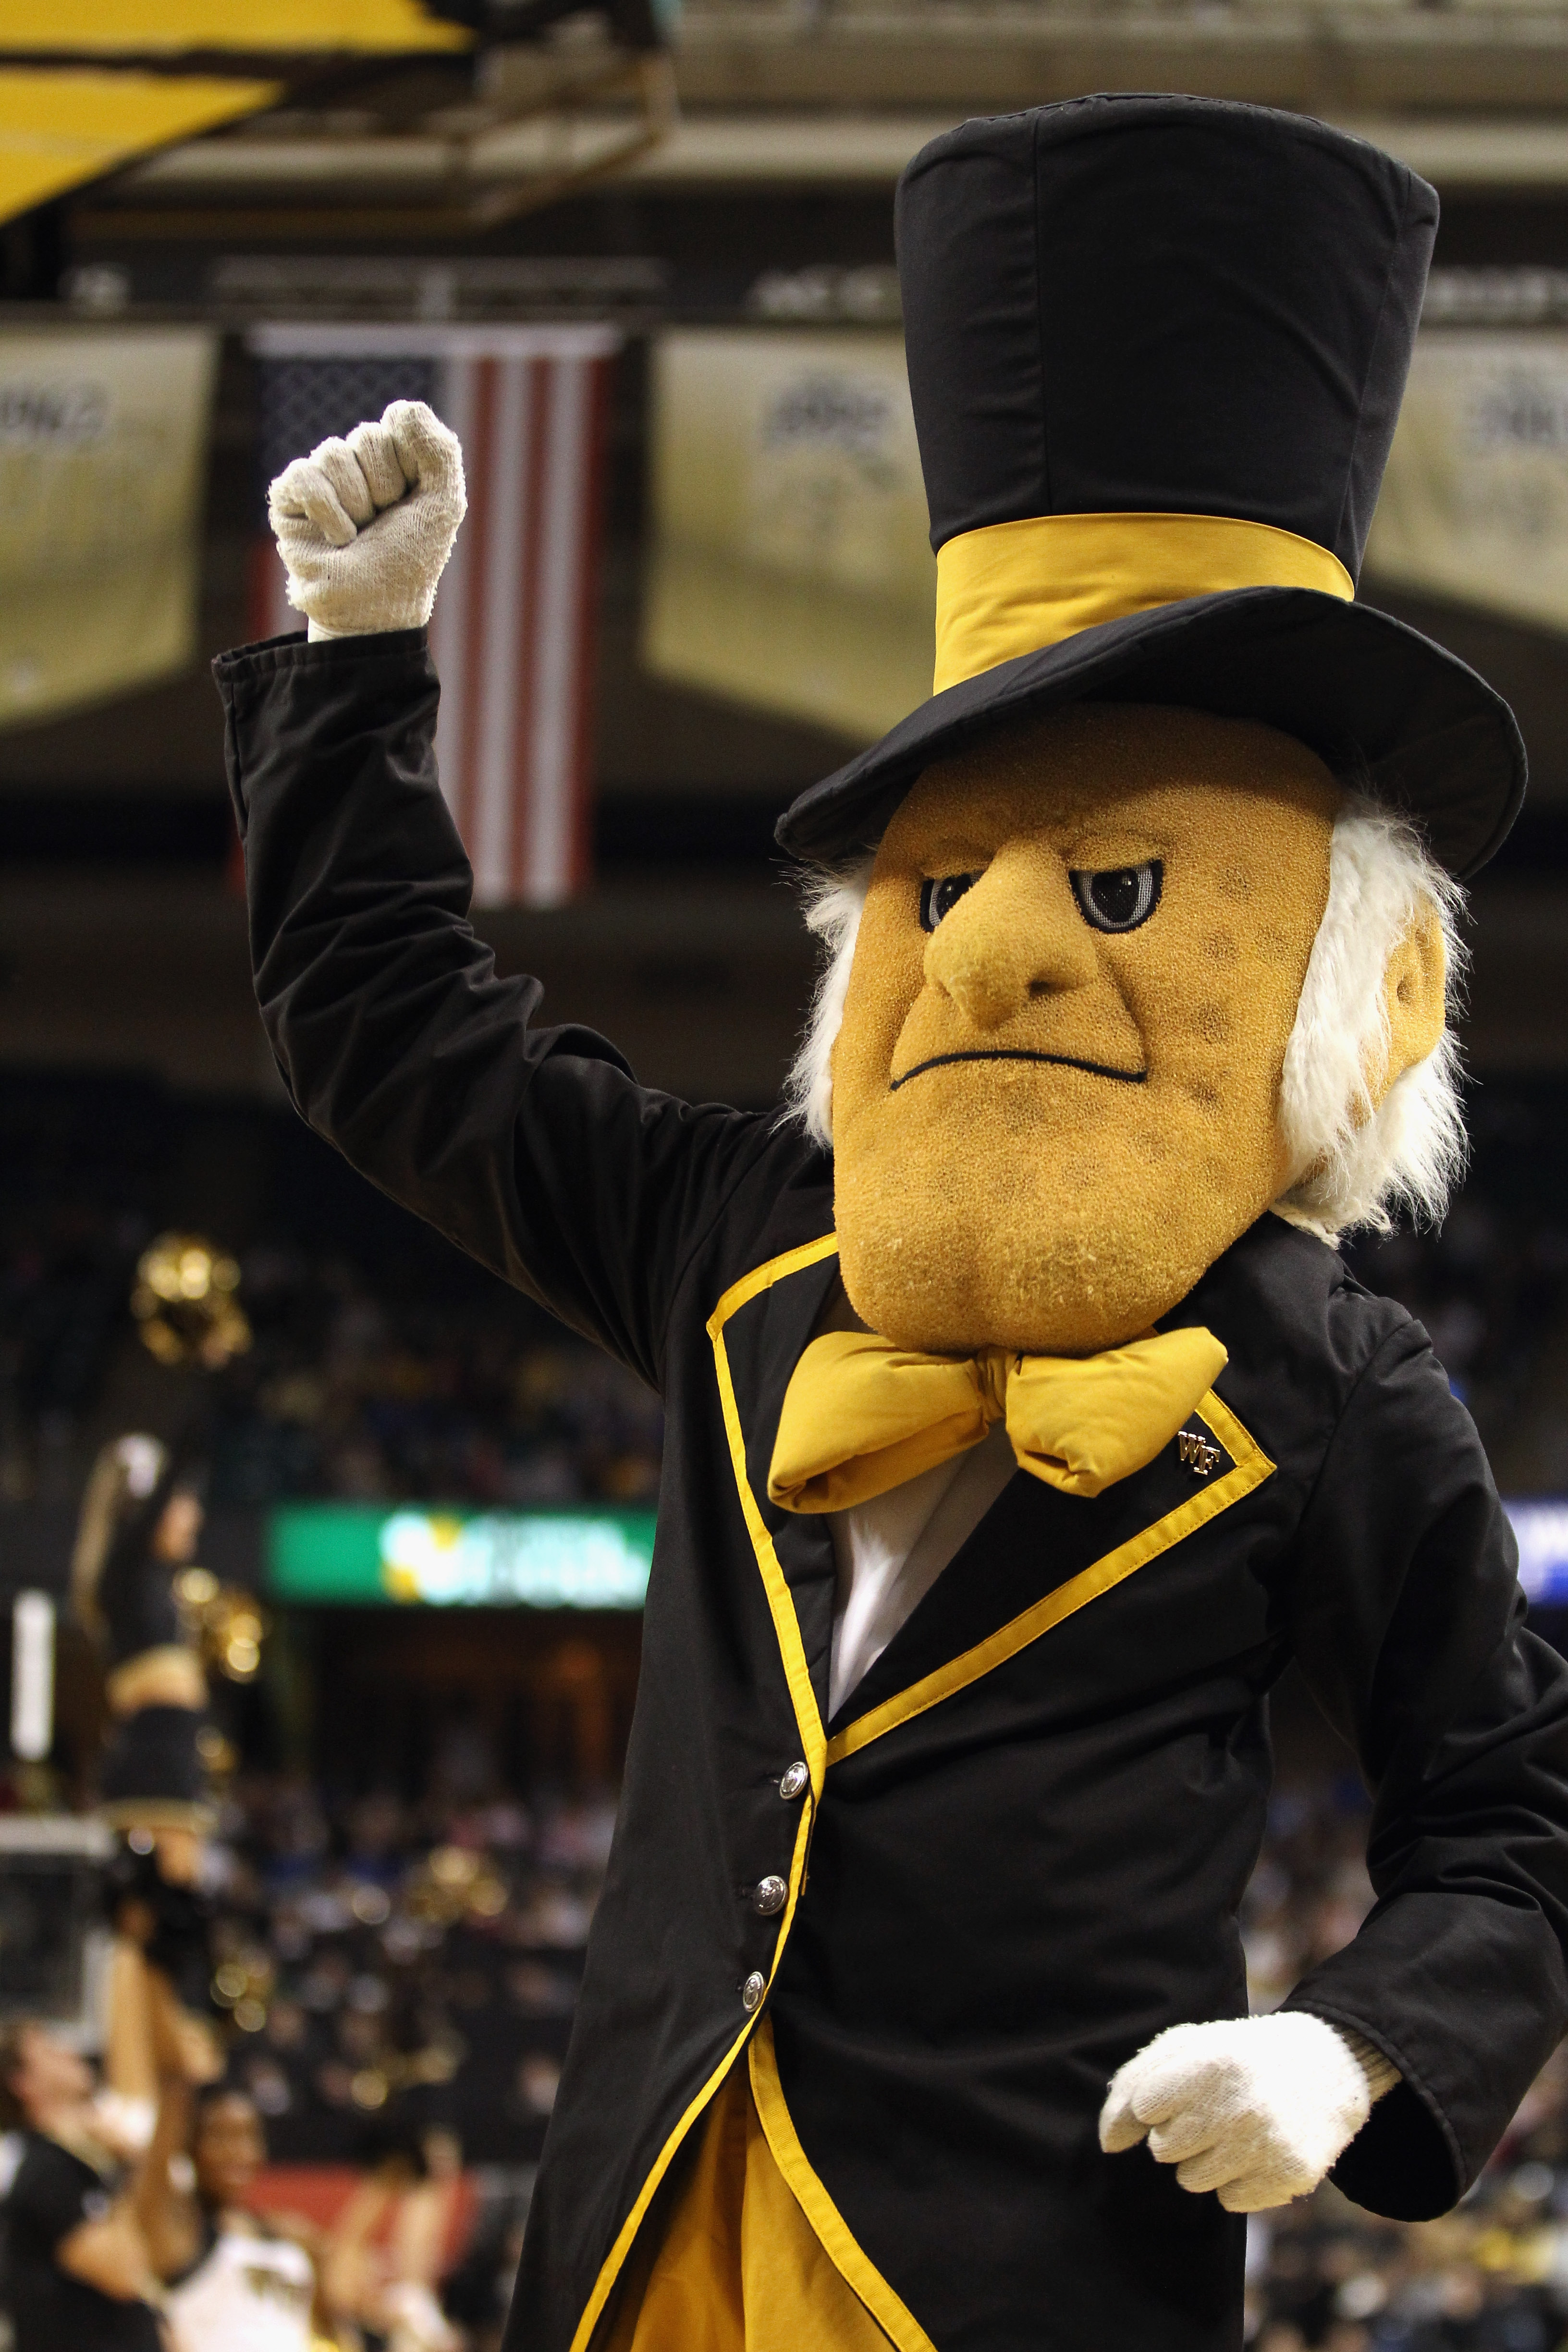 WINSTON SALEM, NC - JANUARY 22:  A general view of the mascot of the Wake Forest Demon Deacons during their game against the Duke Blue Devils at Lawrence Joel Coliseum on January 22, 2011 in Winston Salem, North Carolina.  (Photo by Streeter Lecka/Getty I